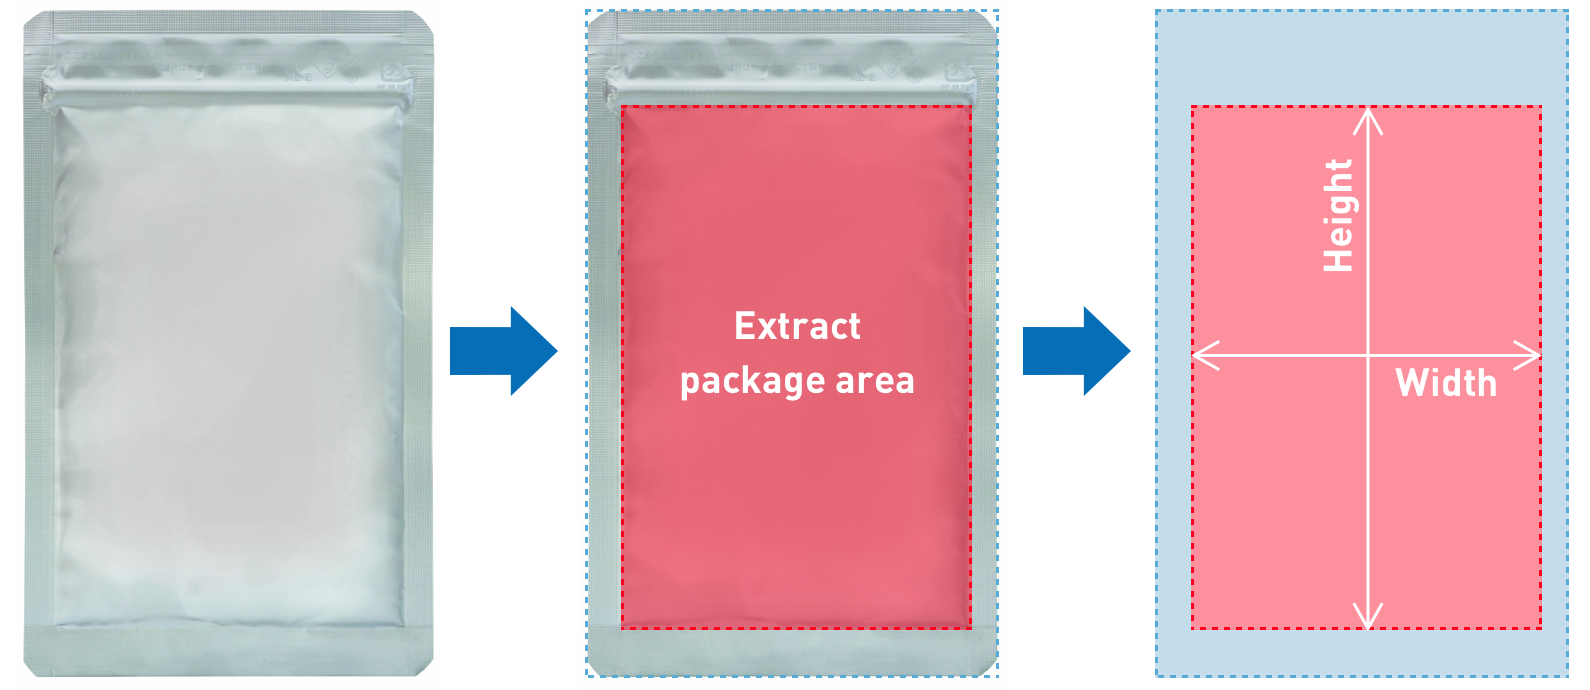 Extract and measure area with packages using AI